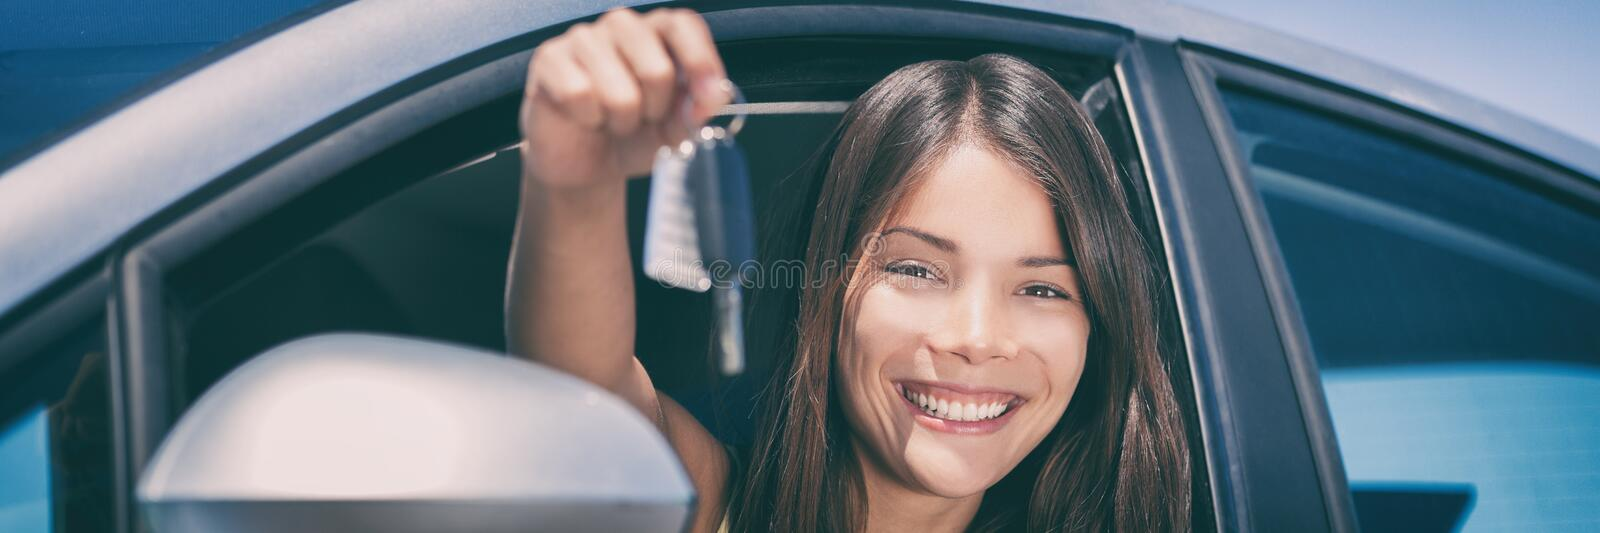 New Car driver young Asian woman driving automatic drive smiling showing new car keys panorama royalty free stock image